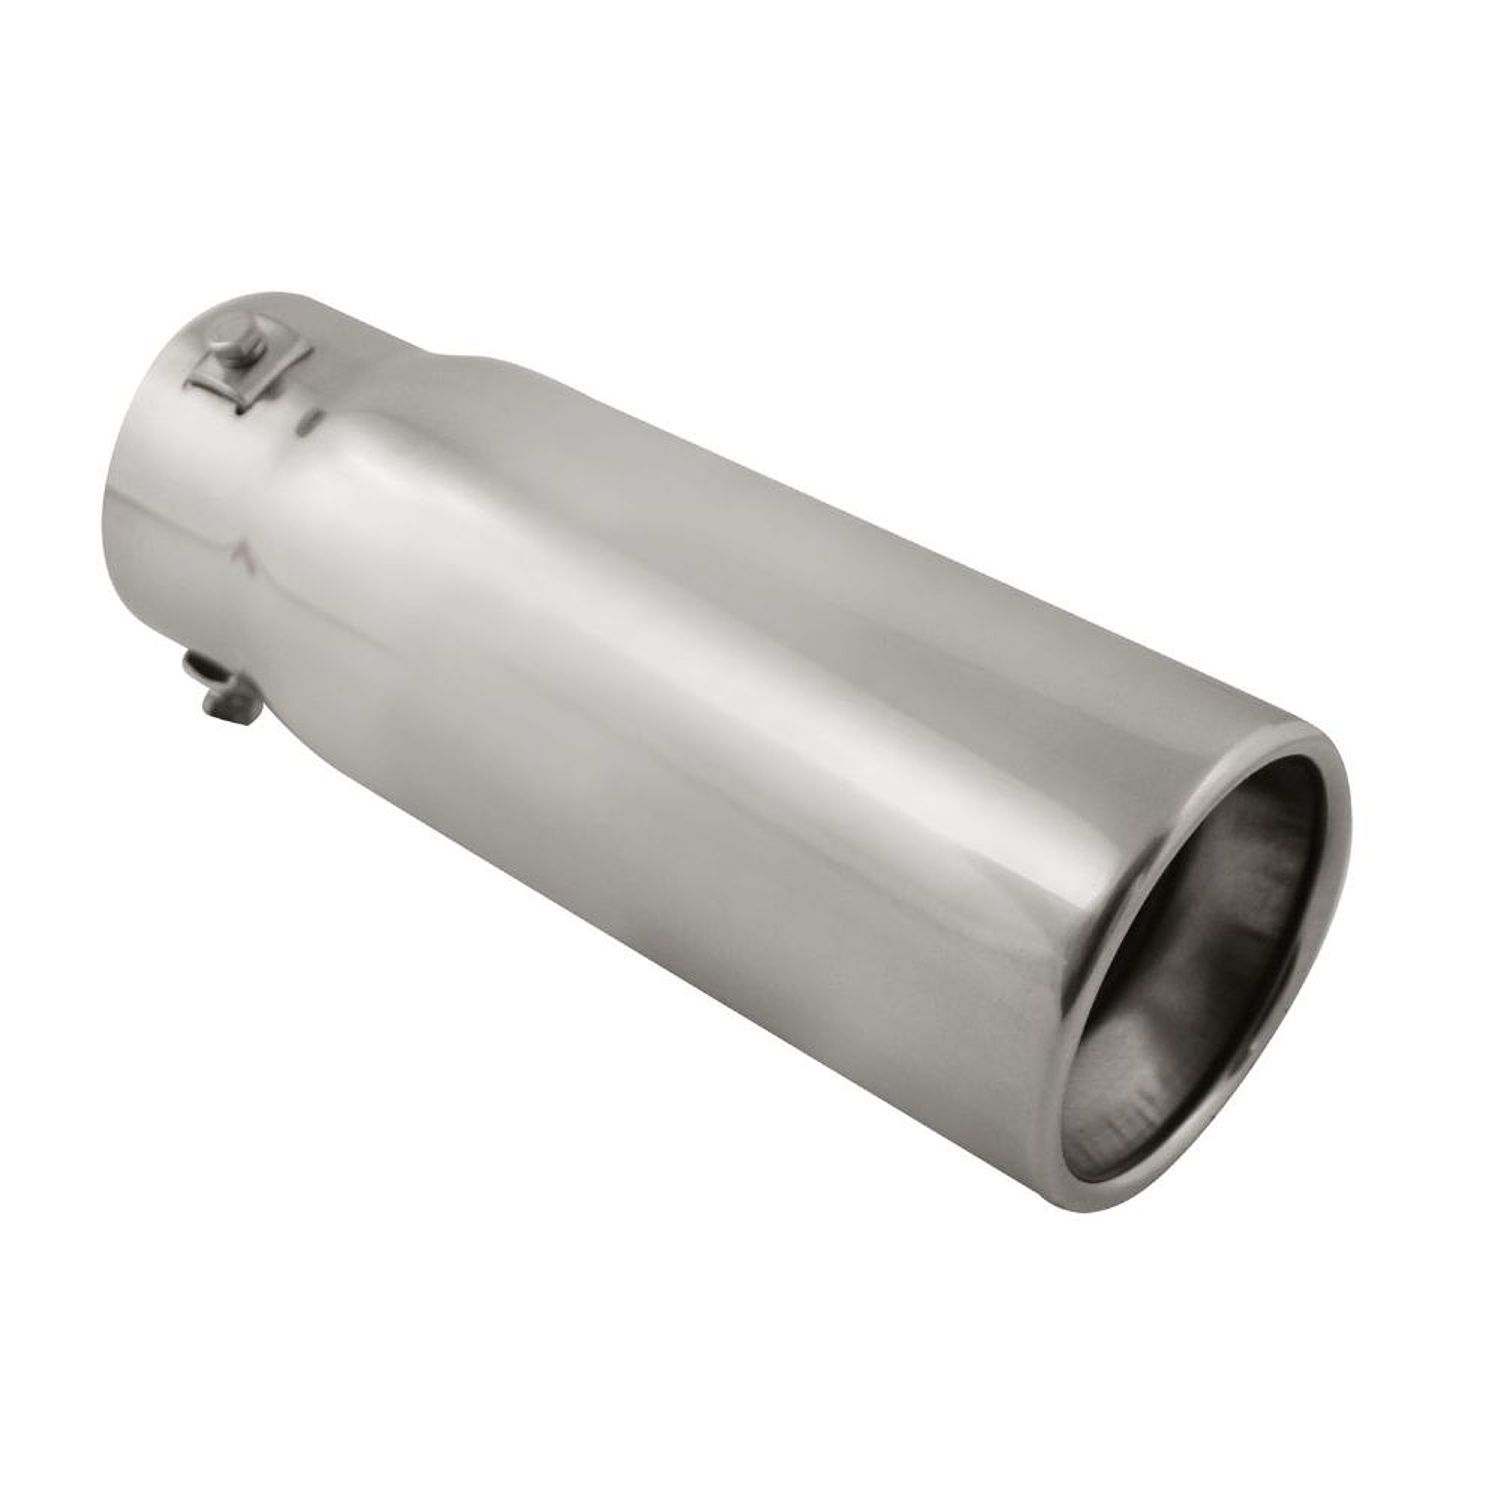 Pilot Automotive PM-5104 Round Resonated Stainless Steel Bolt On Exhaust Tip Fits: 3-1/4 inch Outlet